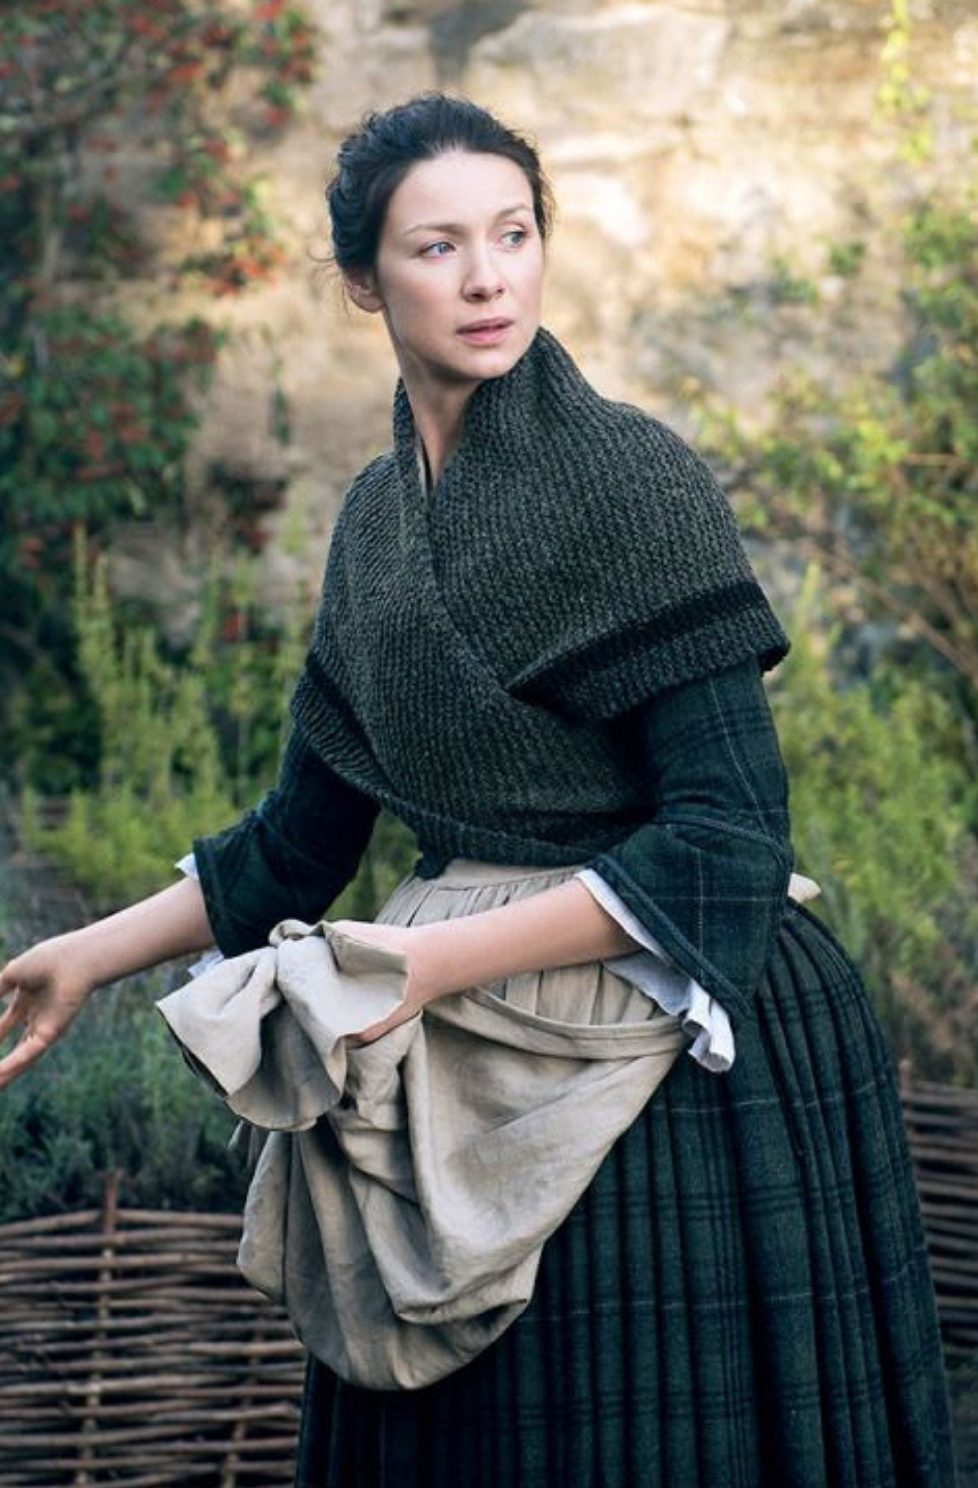 Free Knitting Patterns For Shrugs And Wraps Outlander Knitting Patterns Free Knitting Patterns Handy Little Me